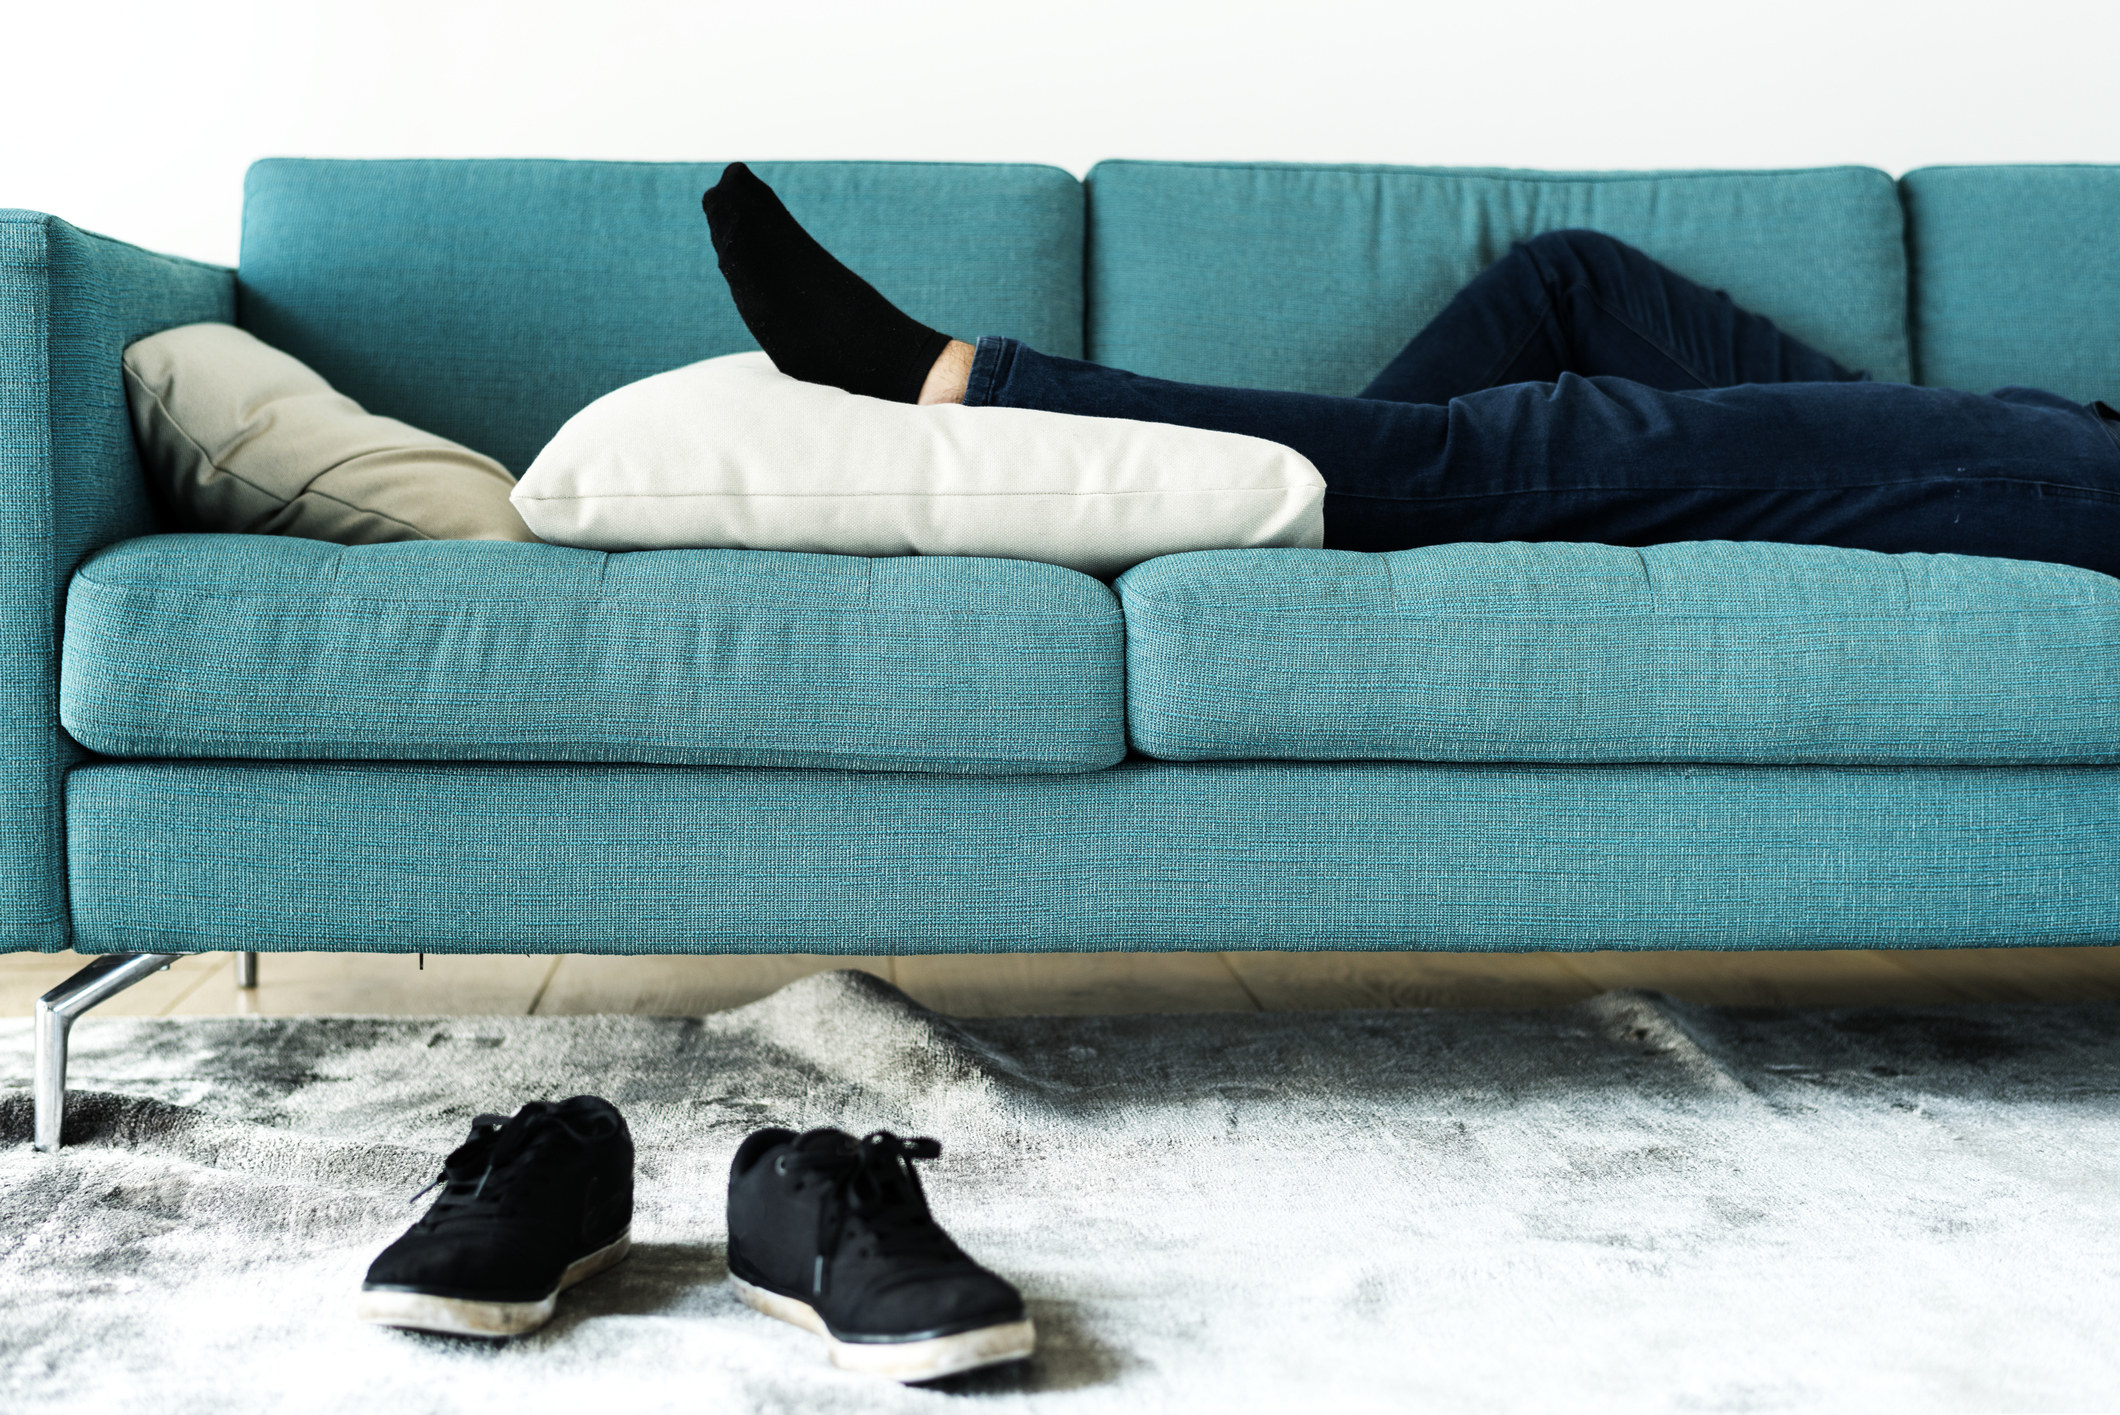 photo of someones legs laid on a blue couch with their sneakers in front of a carpet, their legs are resting on a white pillow and they are wearing dark blue jeans